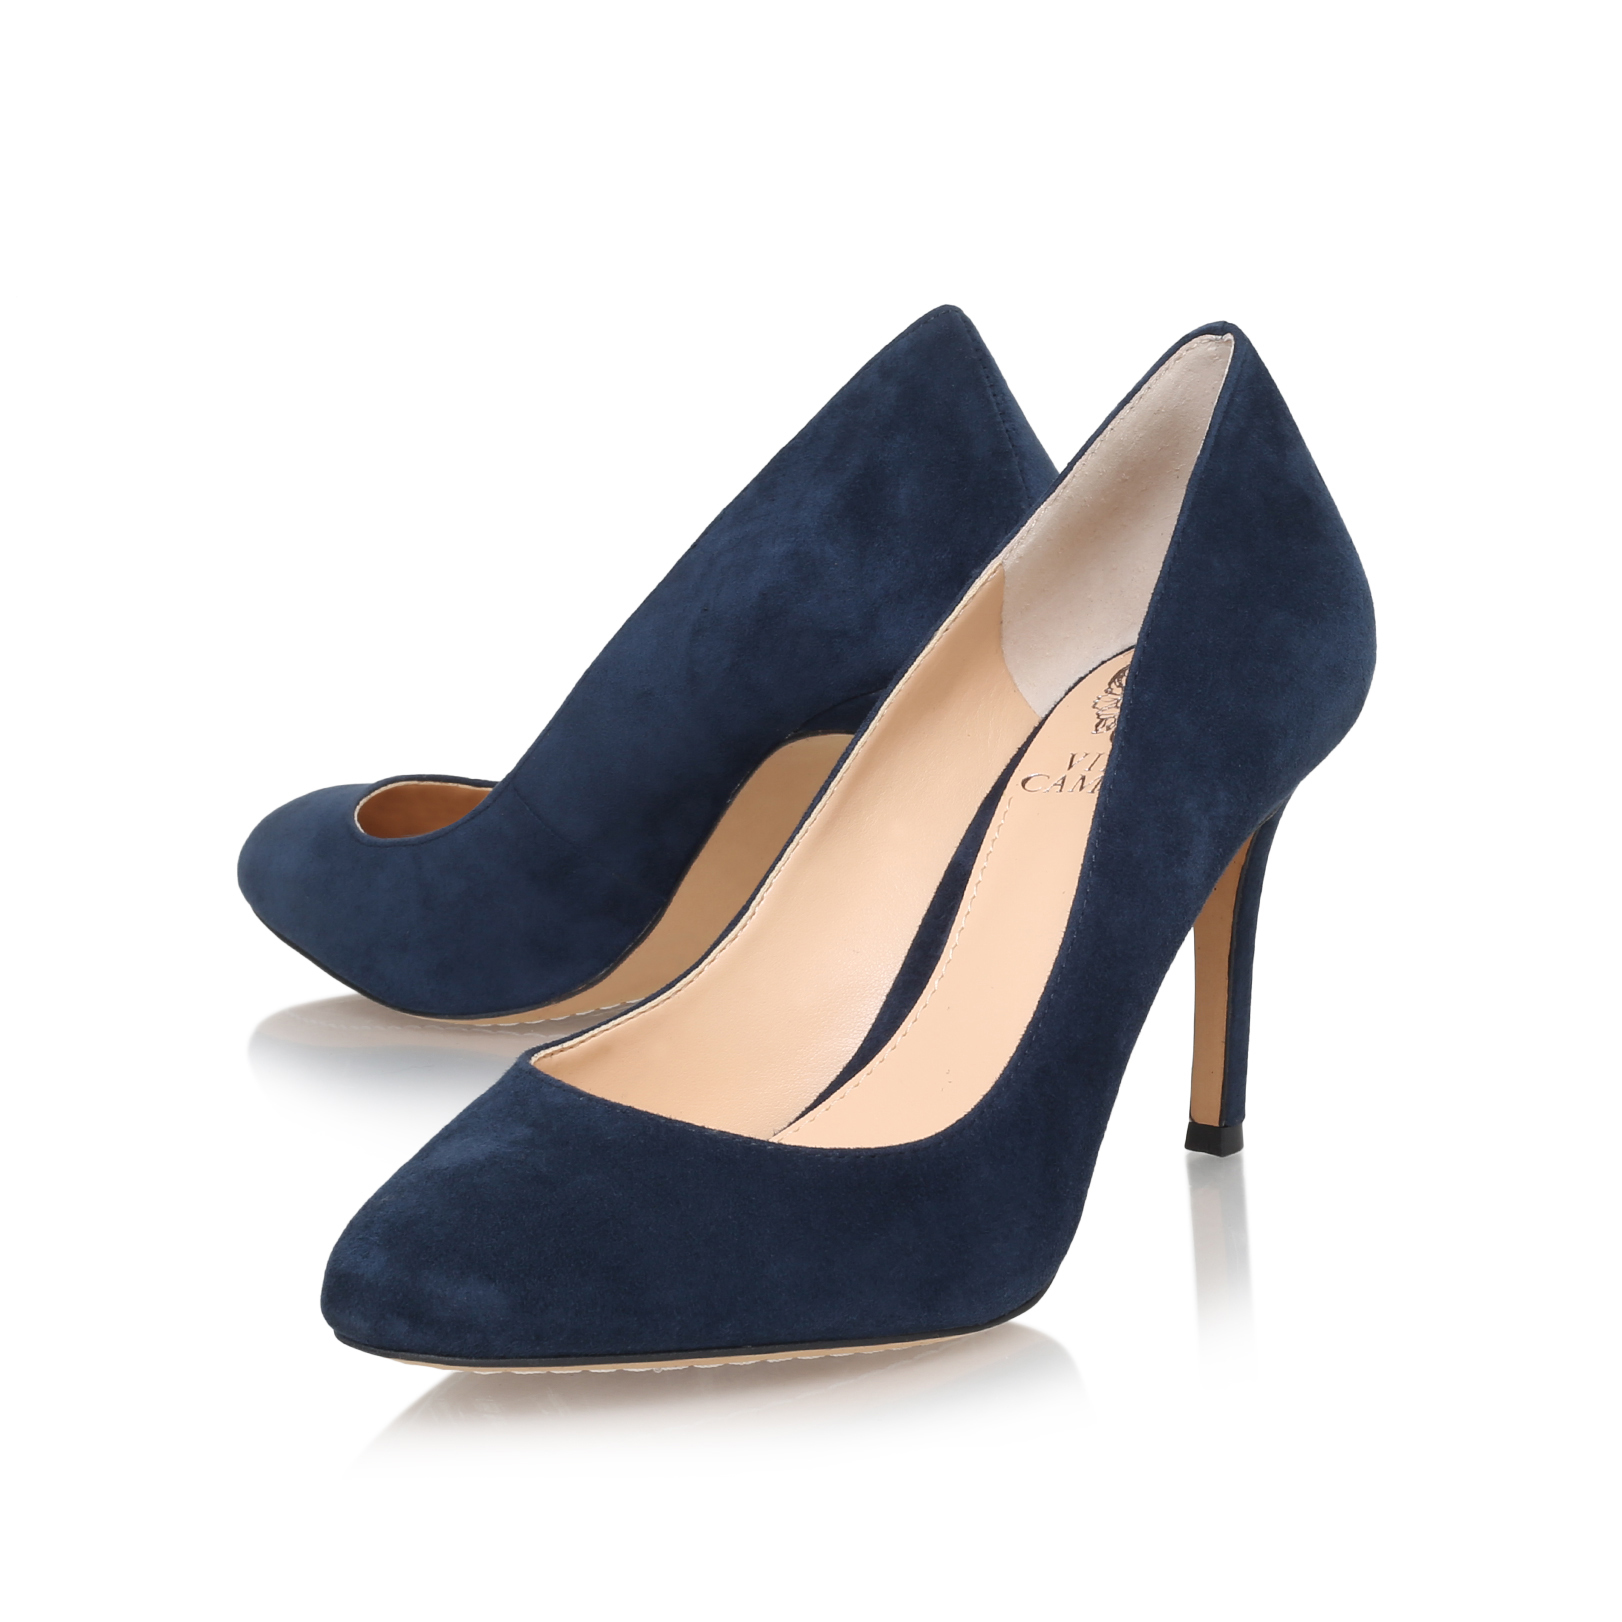 11481787fdbd0 Vince Camuto   MAYRA Blue Mid Heel Court Shoes by VINCE CAMUTO